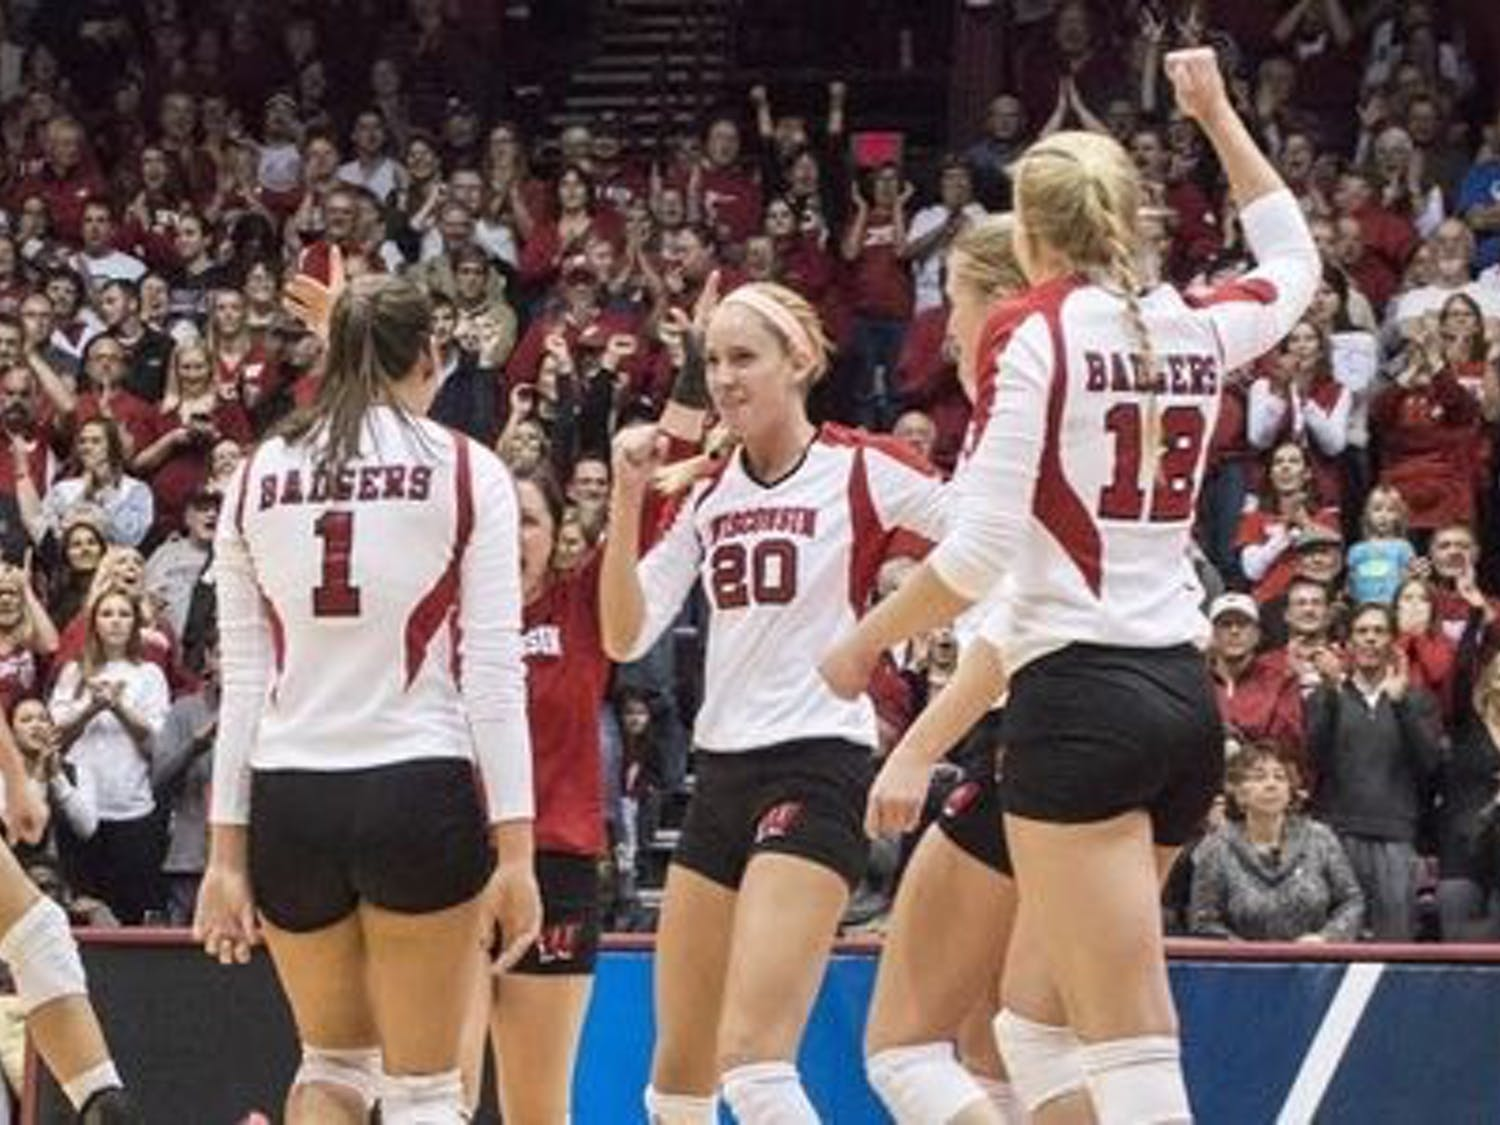 Two years ago, Wisconsin celebrated a victory over Ohio State to advance to the elite eight. They will look to repeat history tomorrow at 1 p.m.